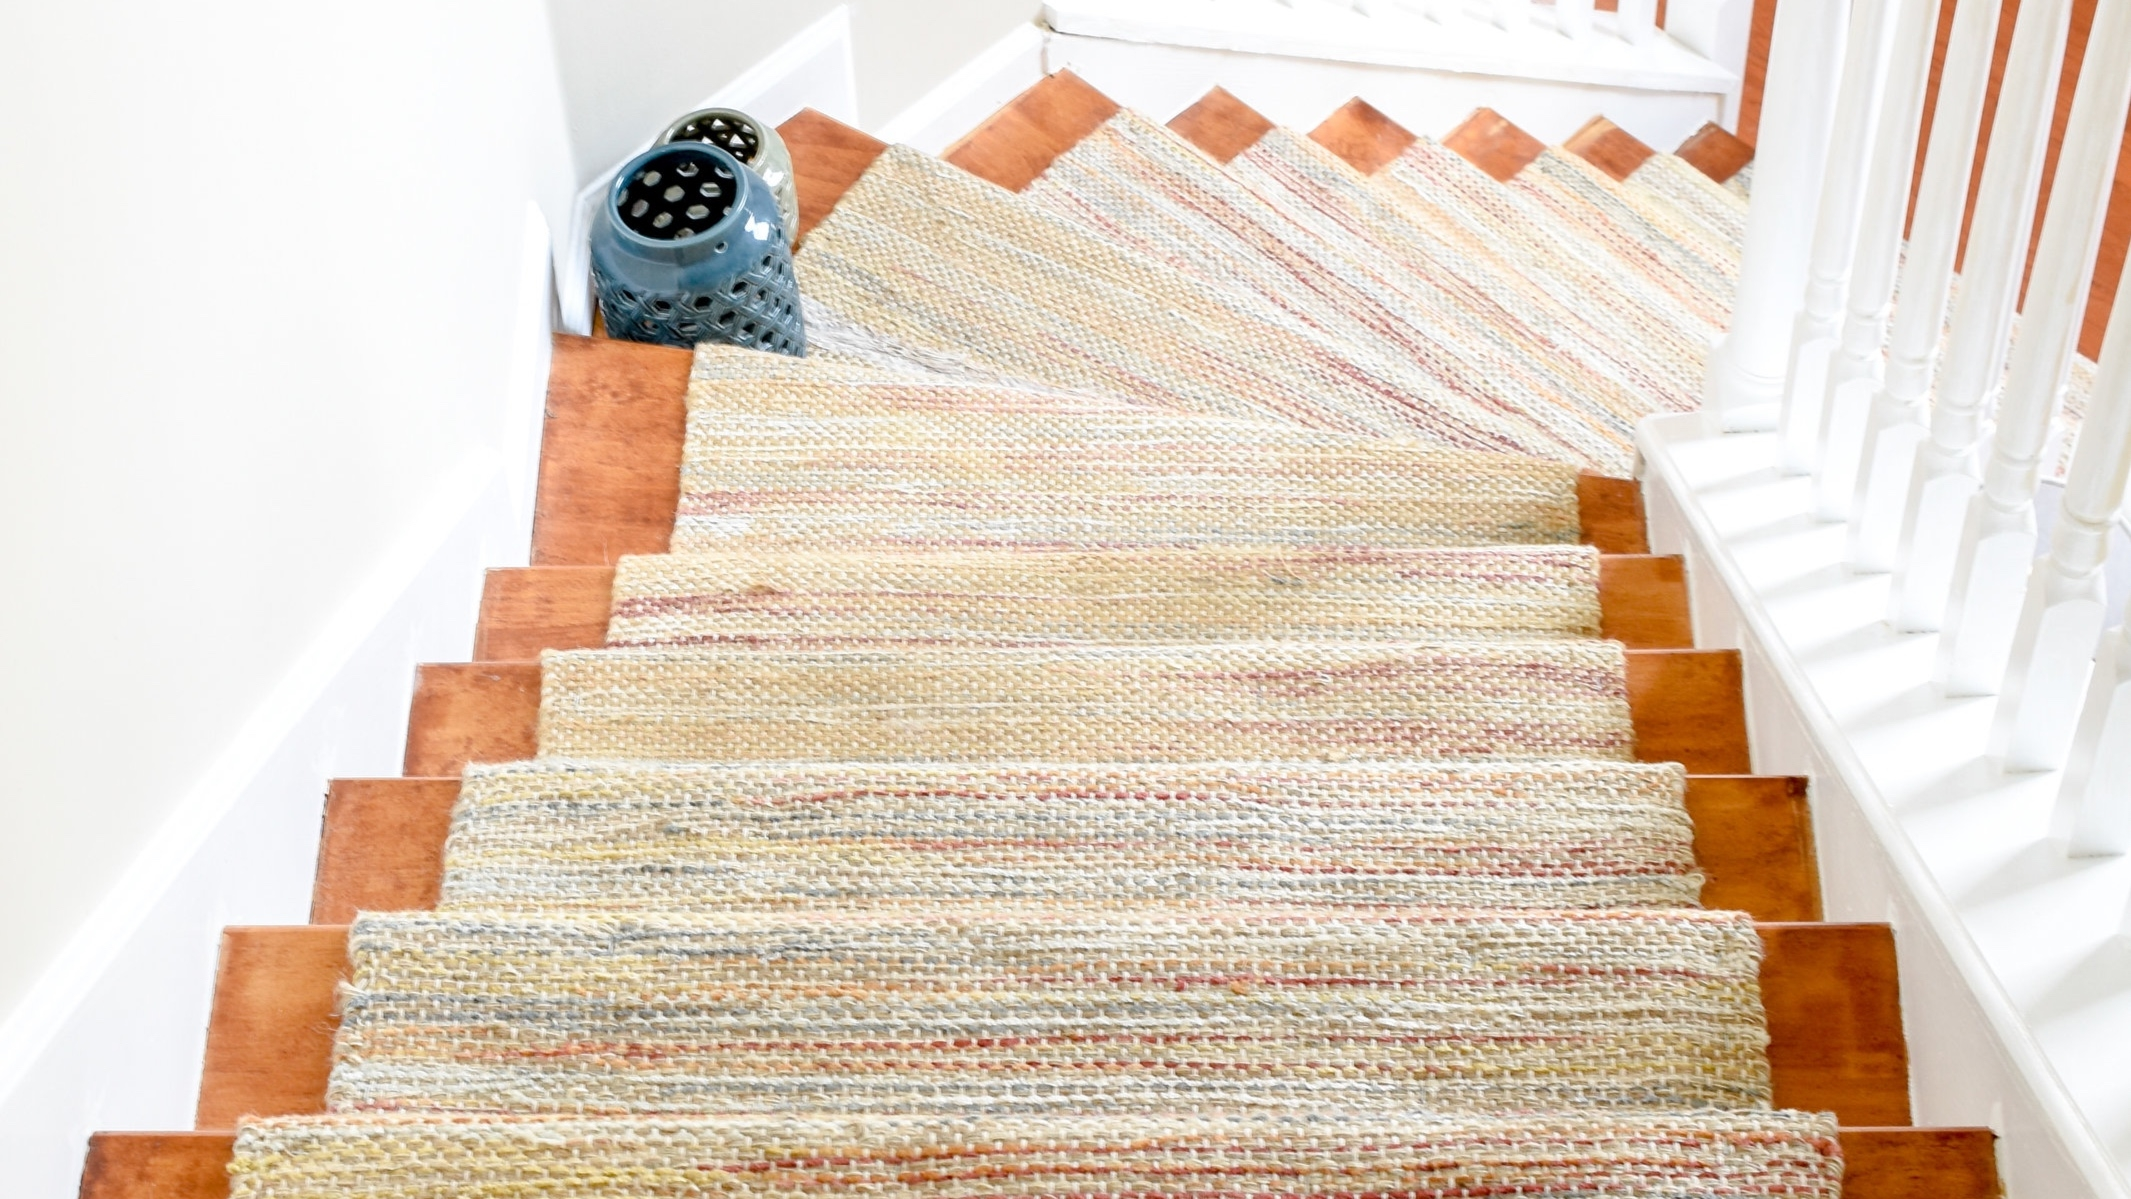 Diy Hardwood Staircase Makeover Replacing Carpet With Wood Treads   Carpeted Stairs With Wood End Caps   Stair Railing   Waterfall   Diy   Capped   Step